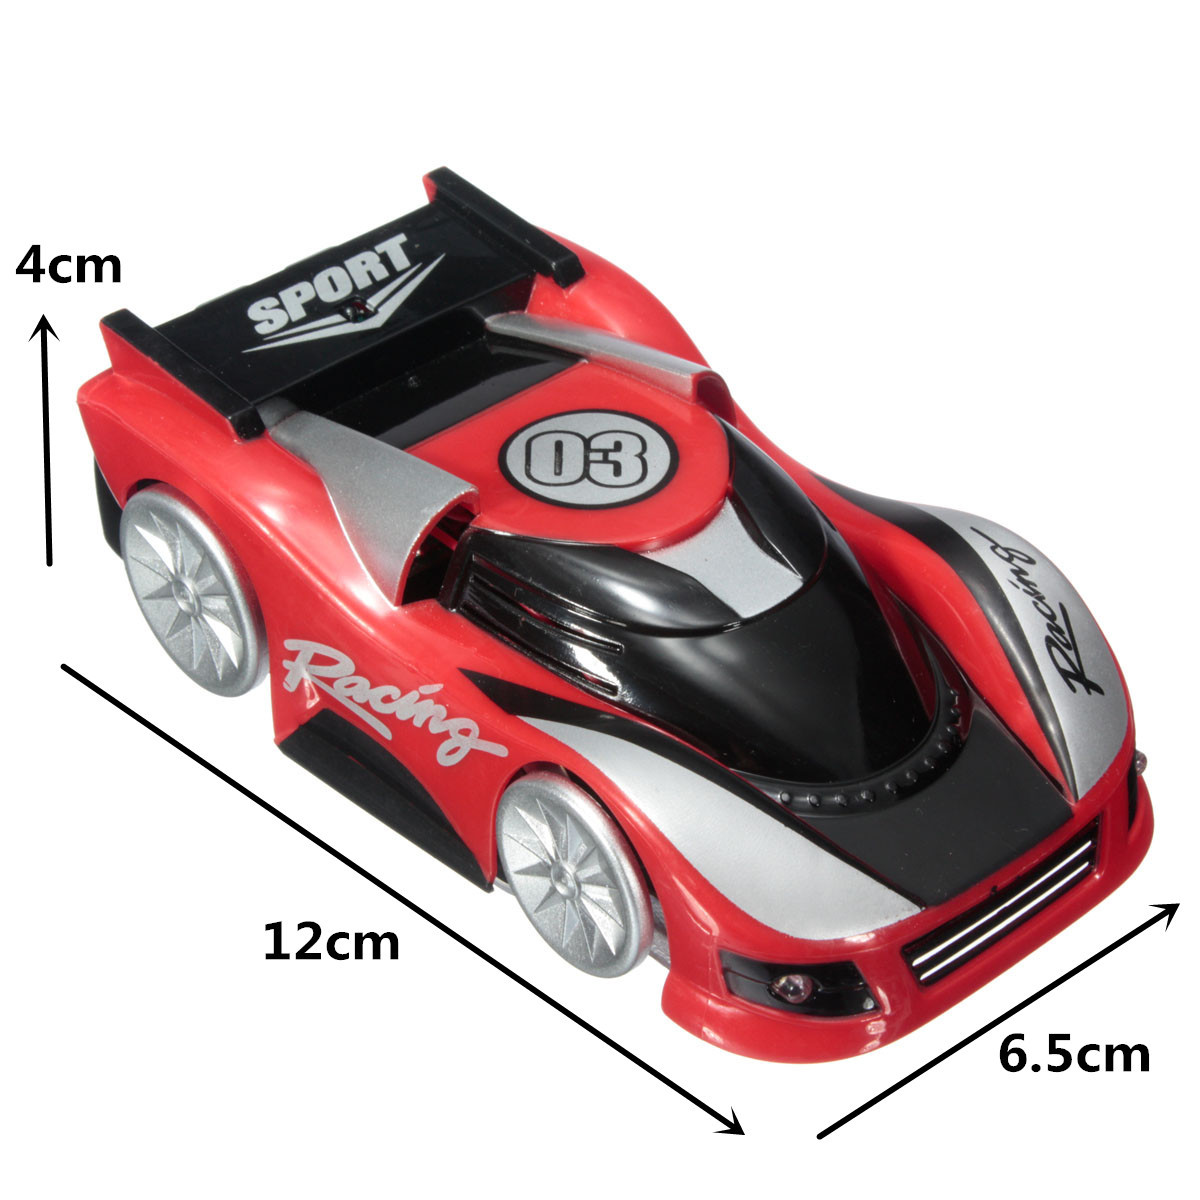 Super Wall Climbing Rc Car Remote Control Climber Ceiling Plastic Circuit Best Kids Toys Cars Rtr Gift In From Hobbies On Alibaba Group